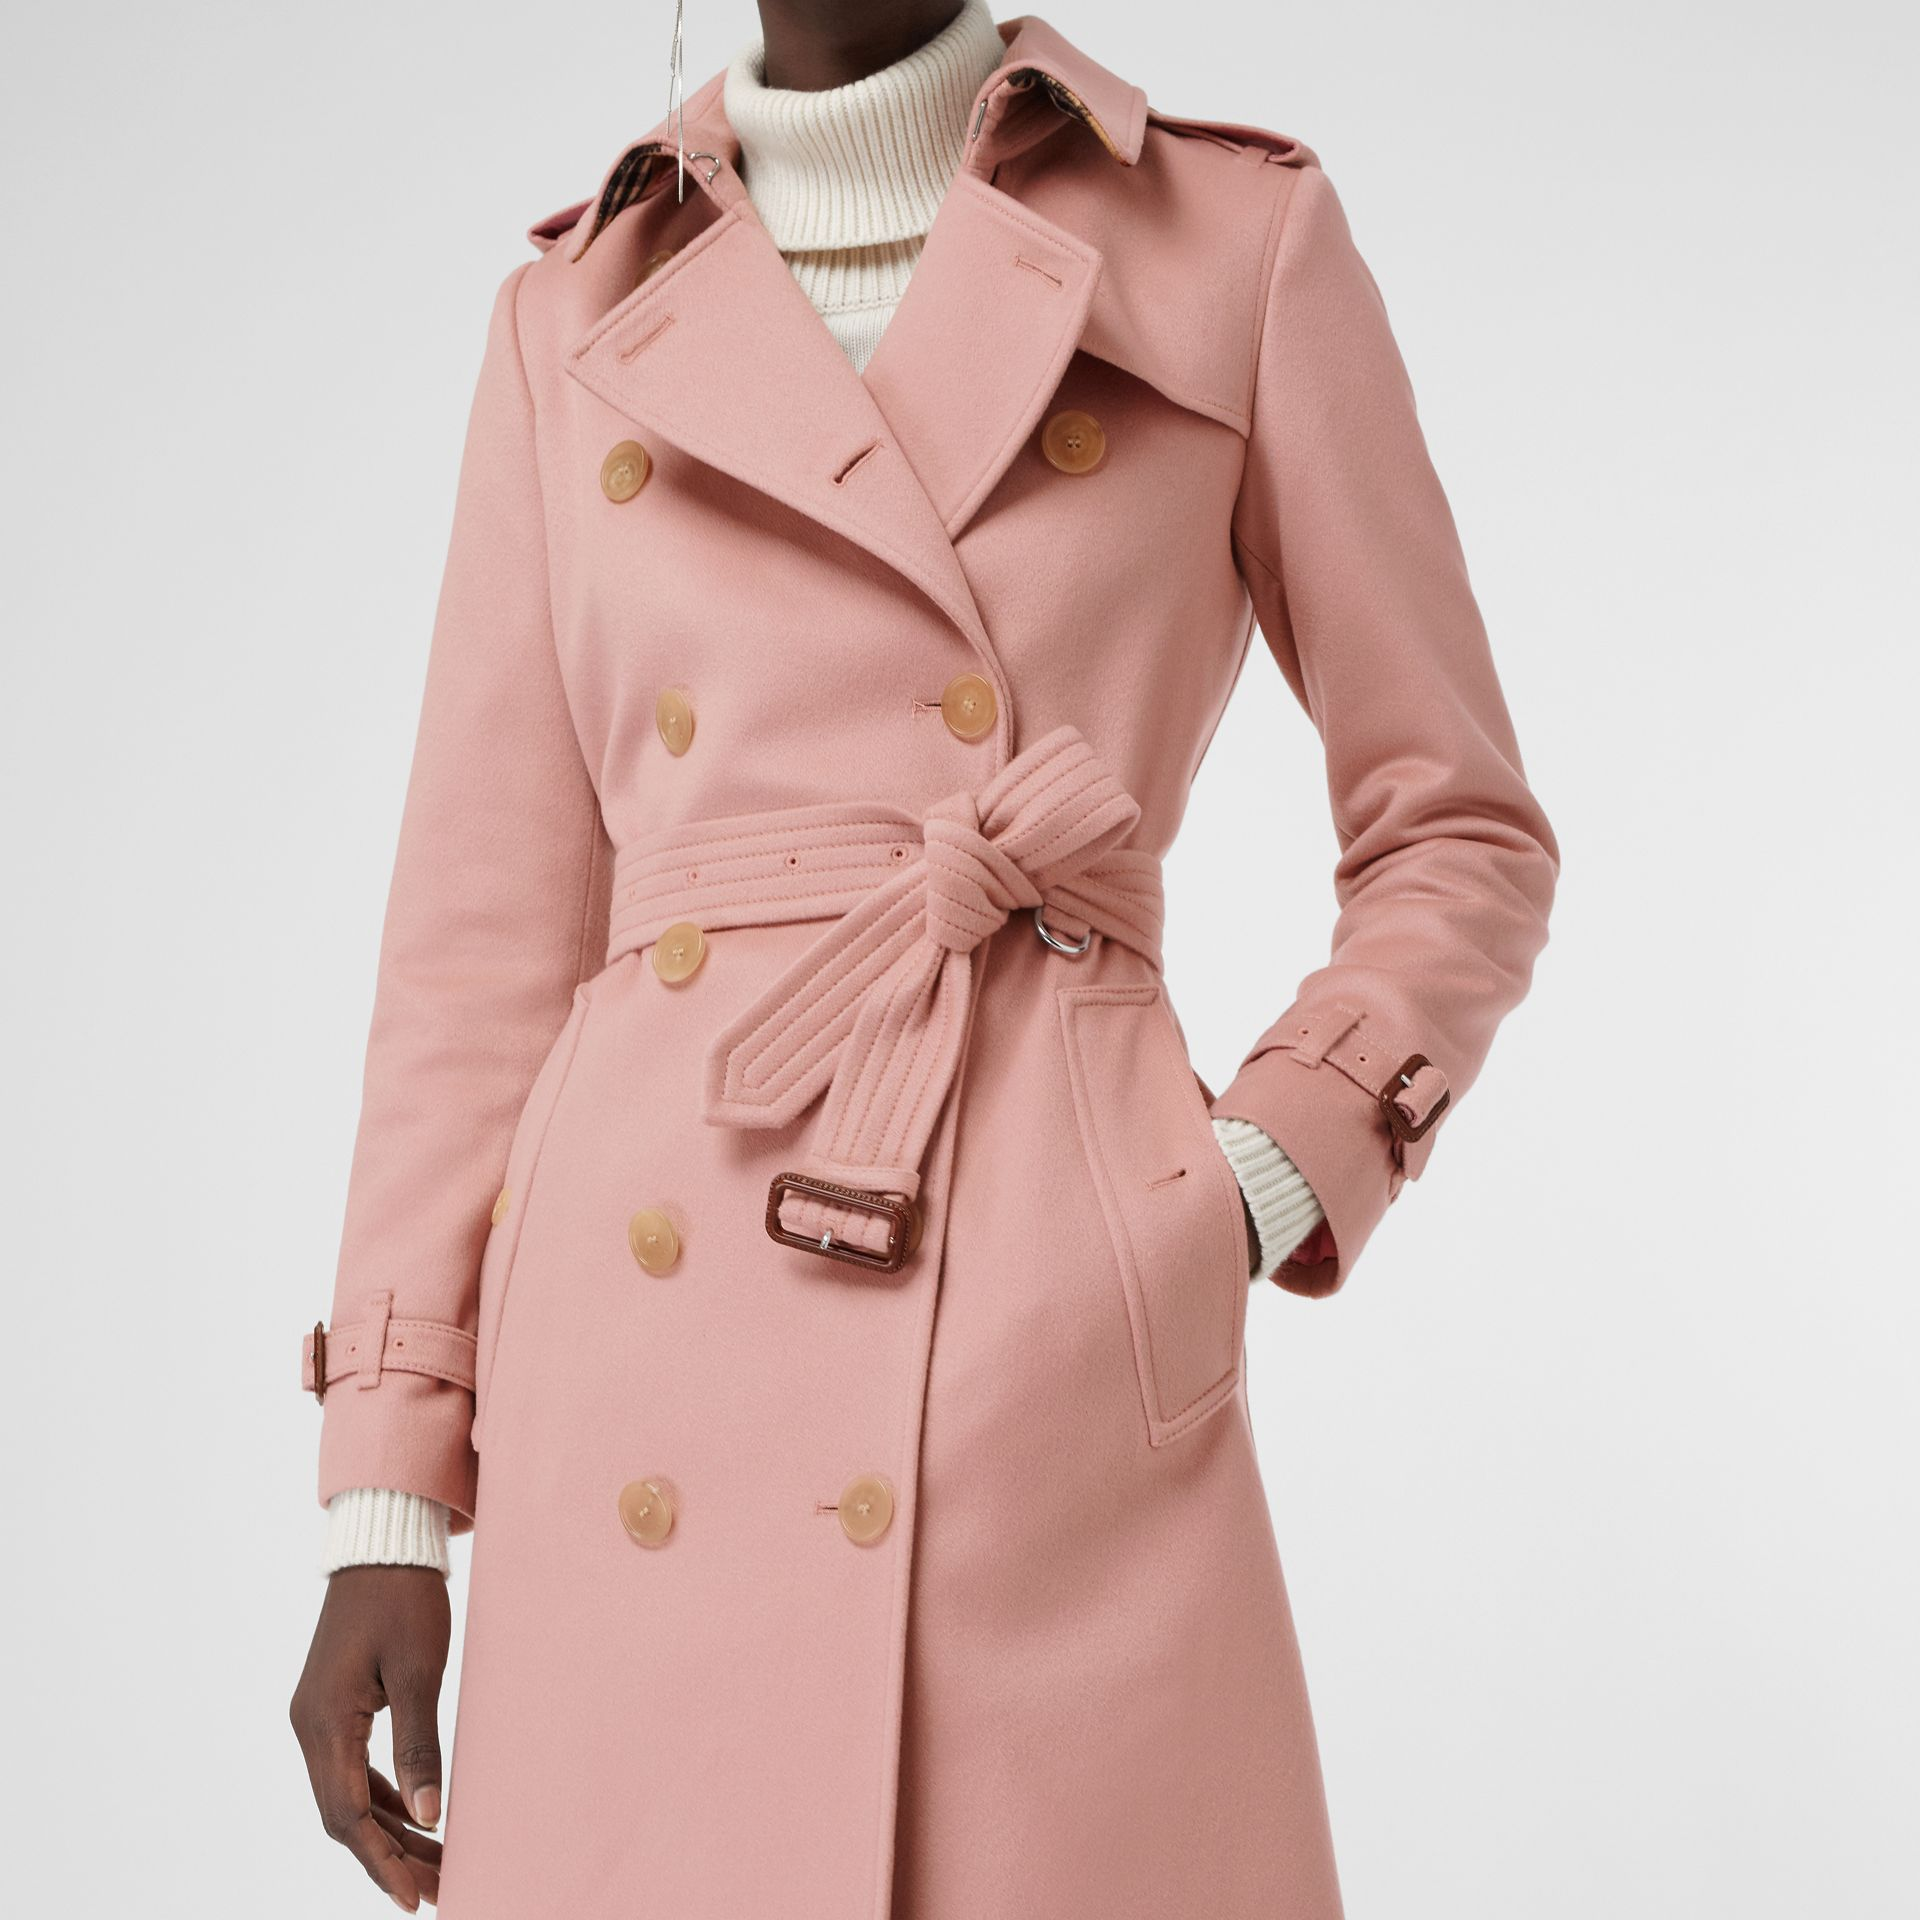 Cashmere Trench Coat in Chalk Pink - Women | Burberry United States - gallery image 5